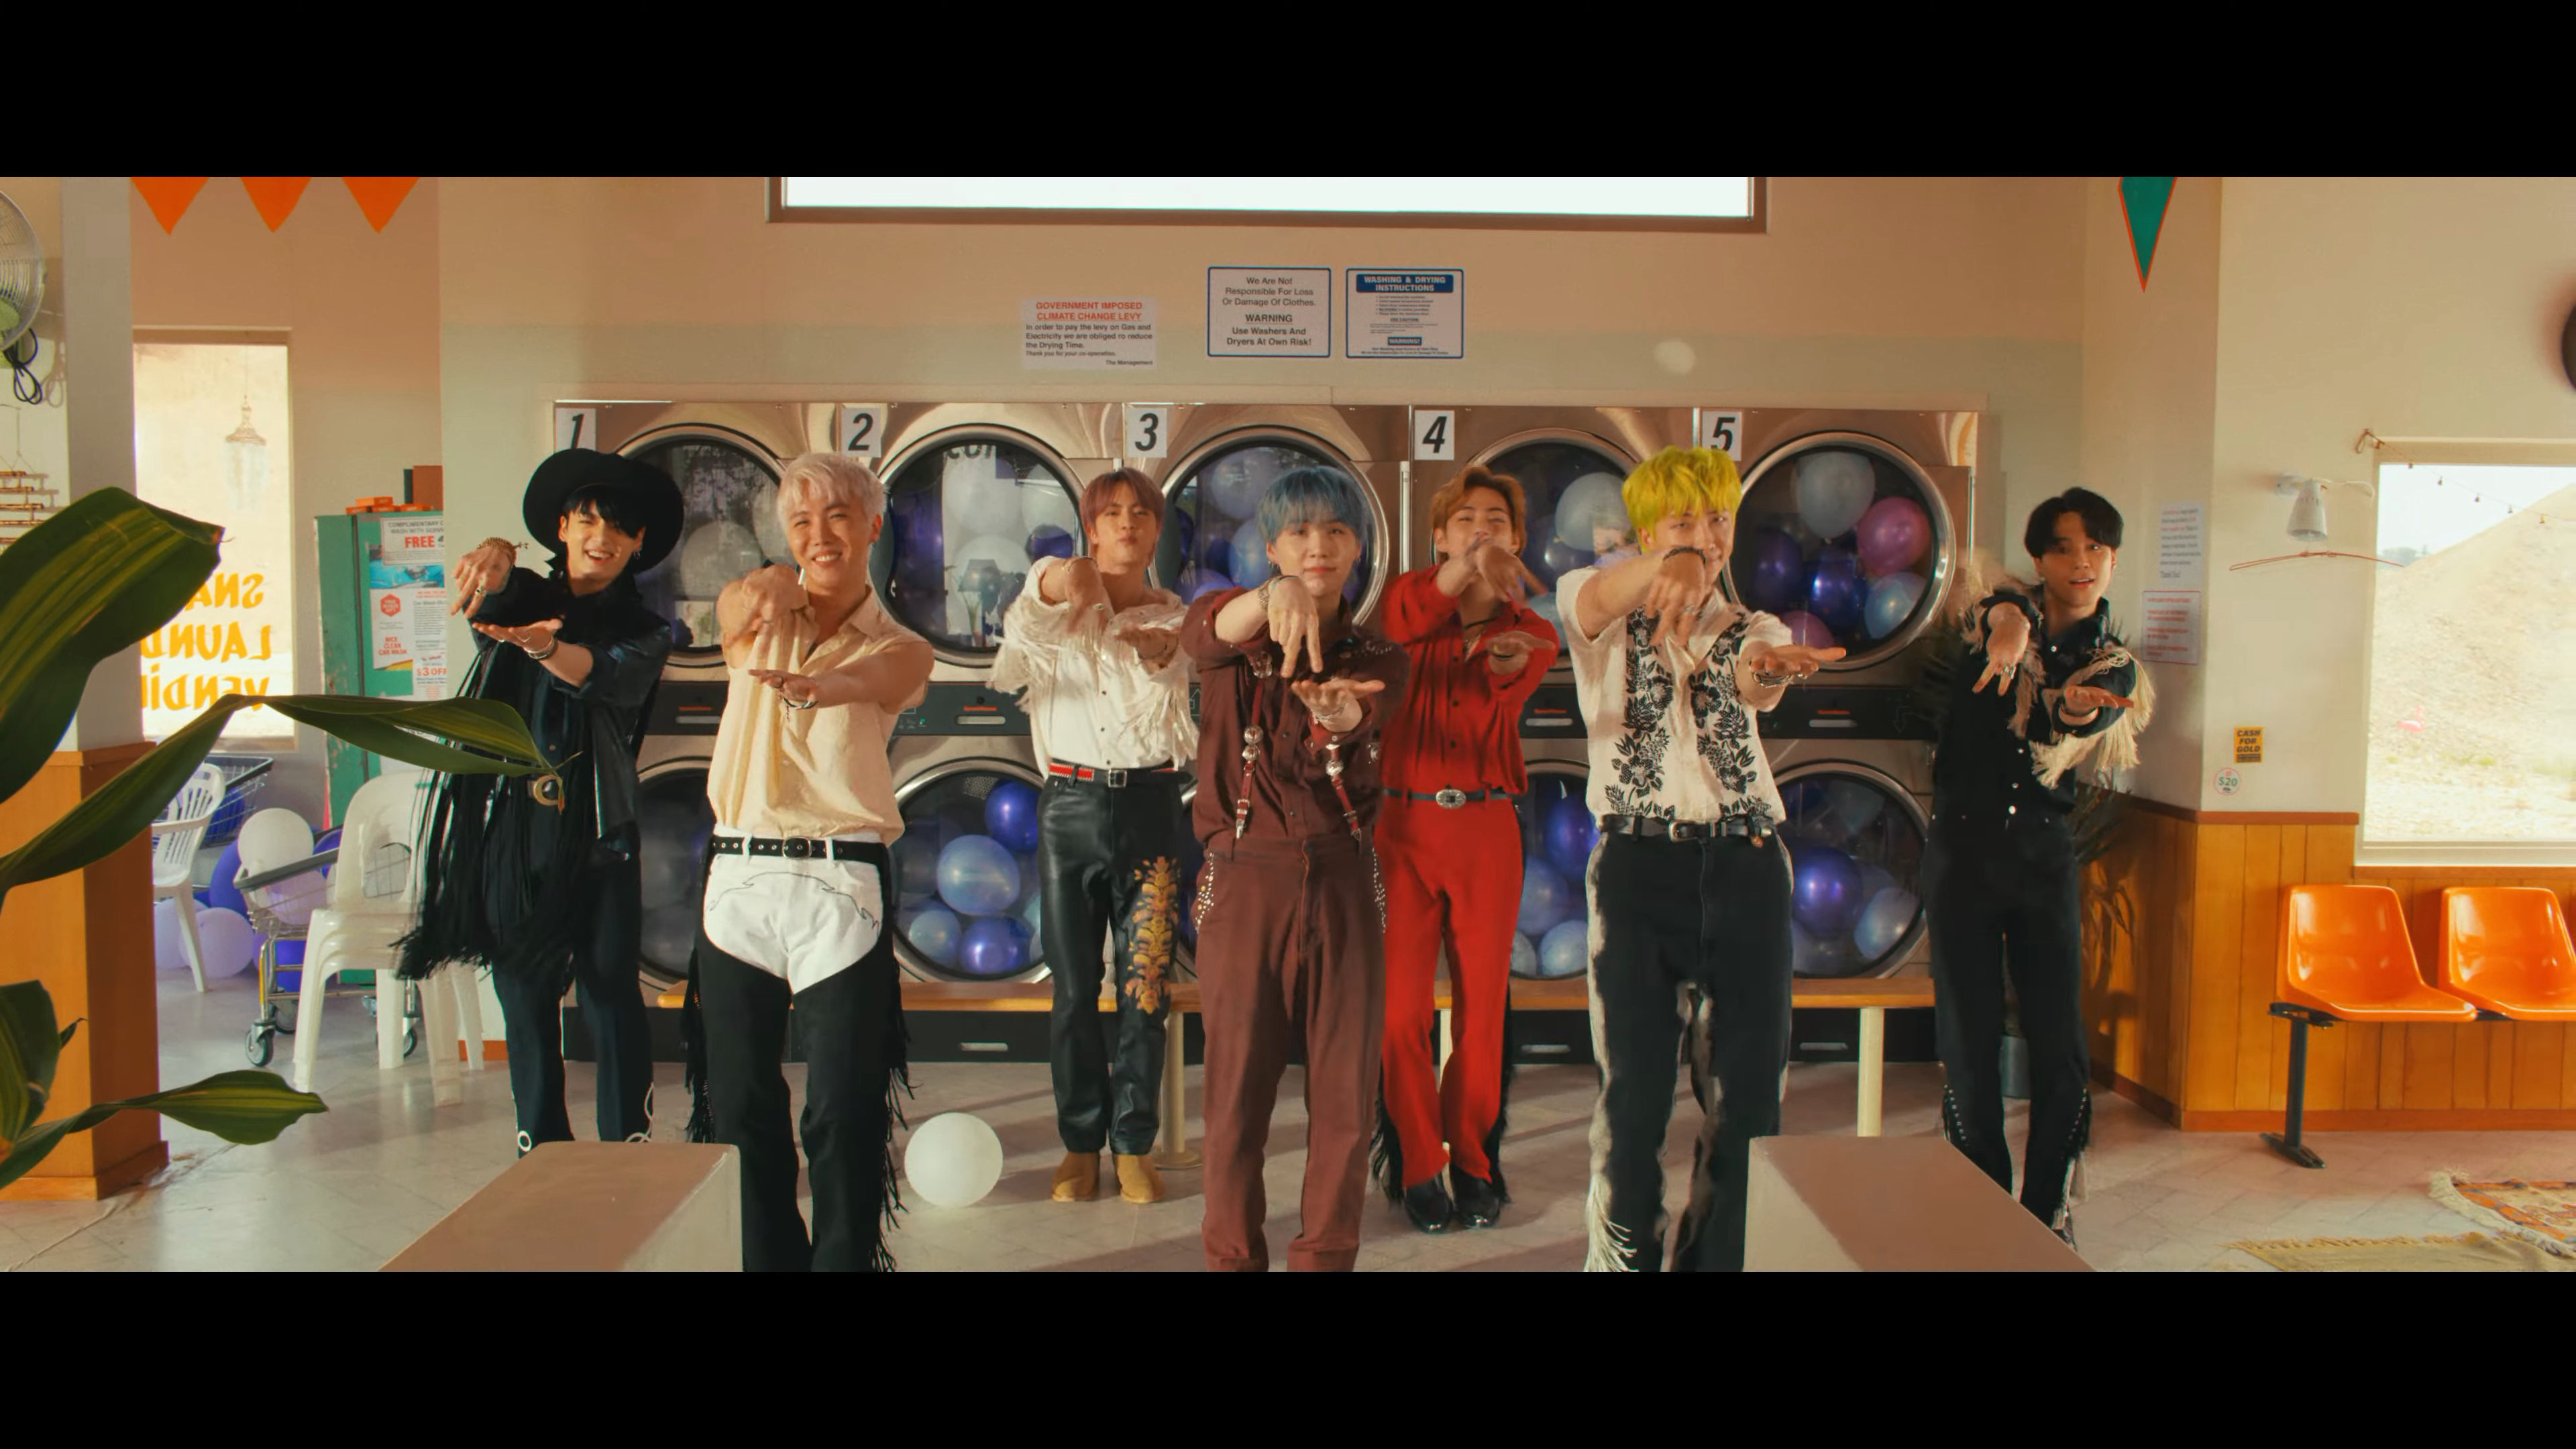 BTS Permission to Dance who's who